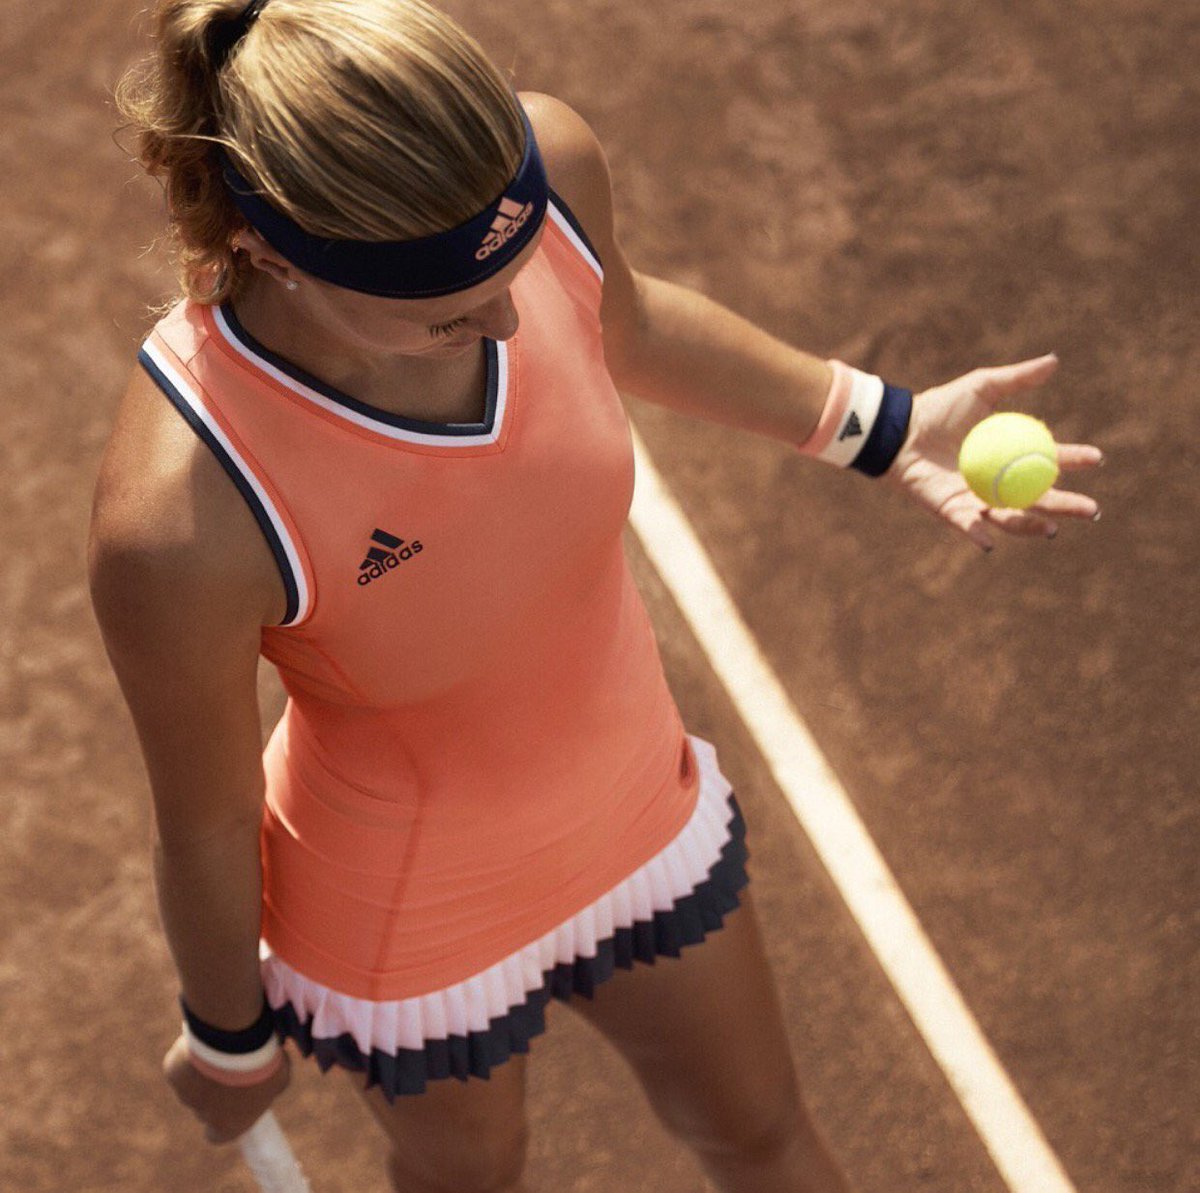 zona mil millones Quejar  Tennis Connected on Twitter: